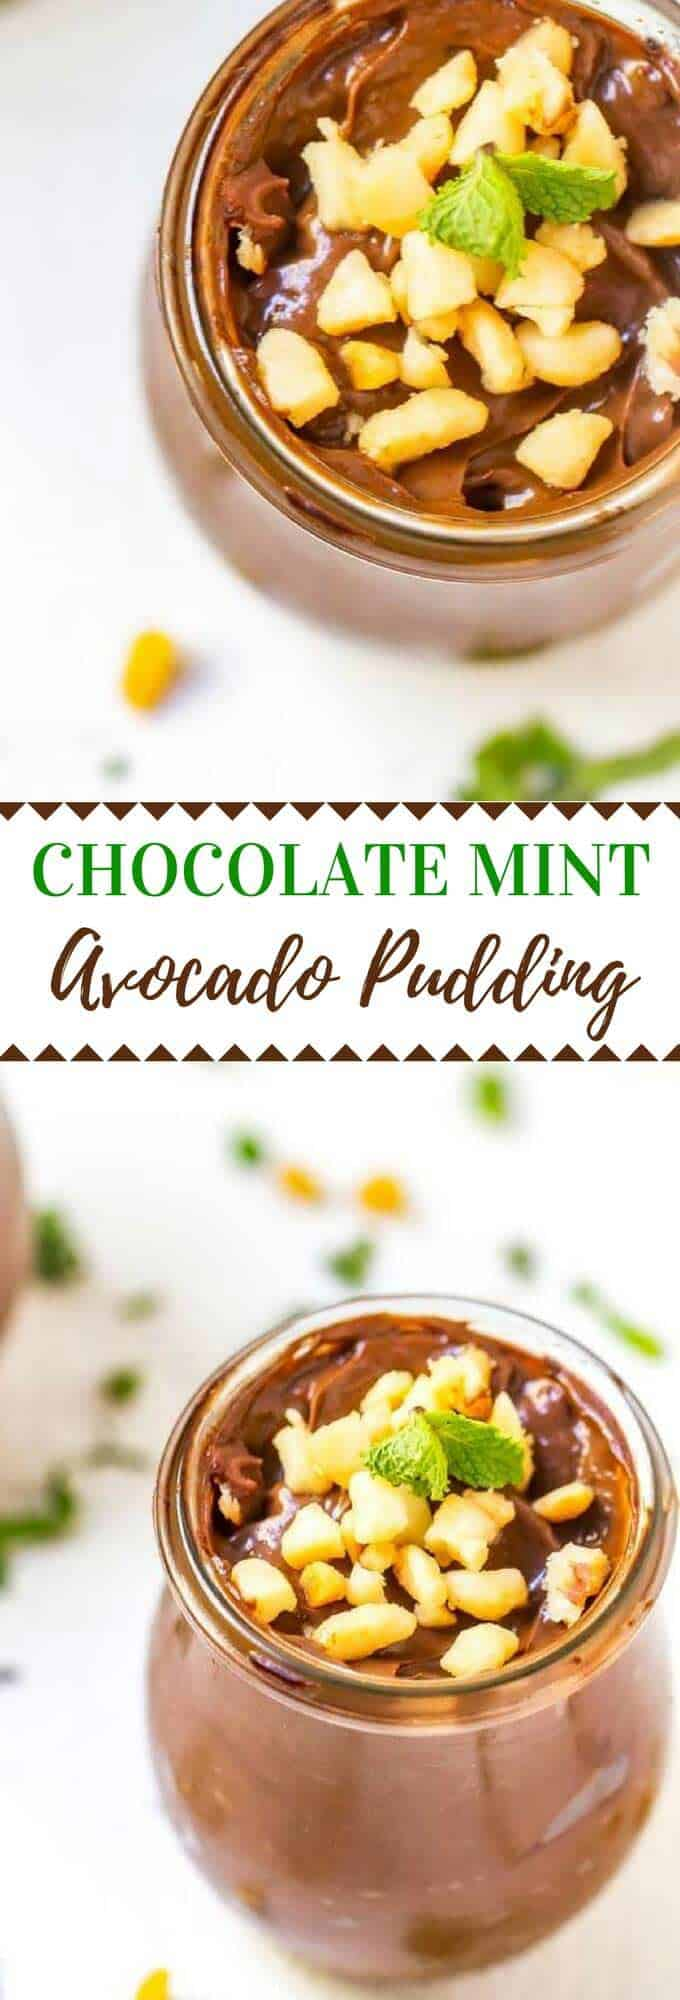 Shhh...don't tell the kids this Chocolate Mint Avocado Pudding is packed with nutrition.  With avocado, omega 3s and greens powder, this Chocolate Avocado Pudding is a nutritional powerhouse! #dairyfree #glutenfree #healthy #chocolate